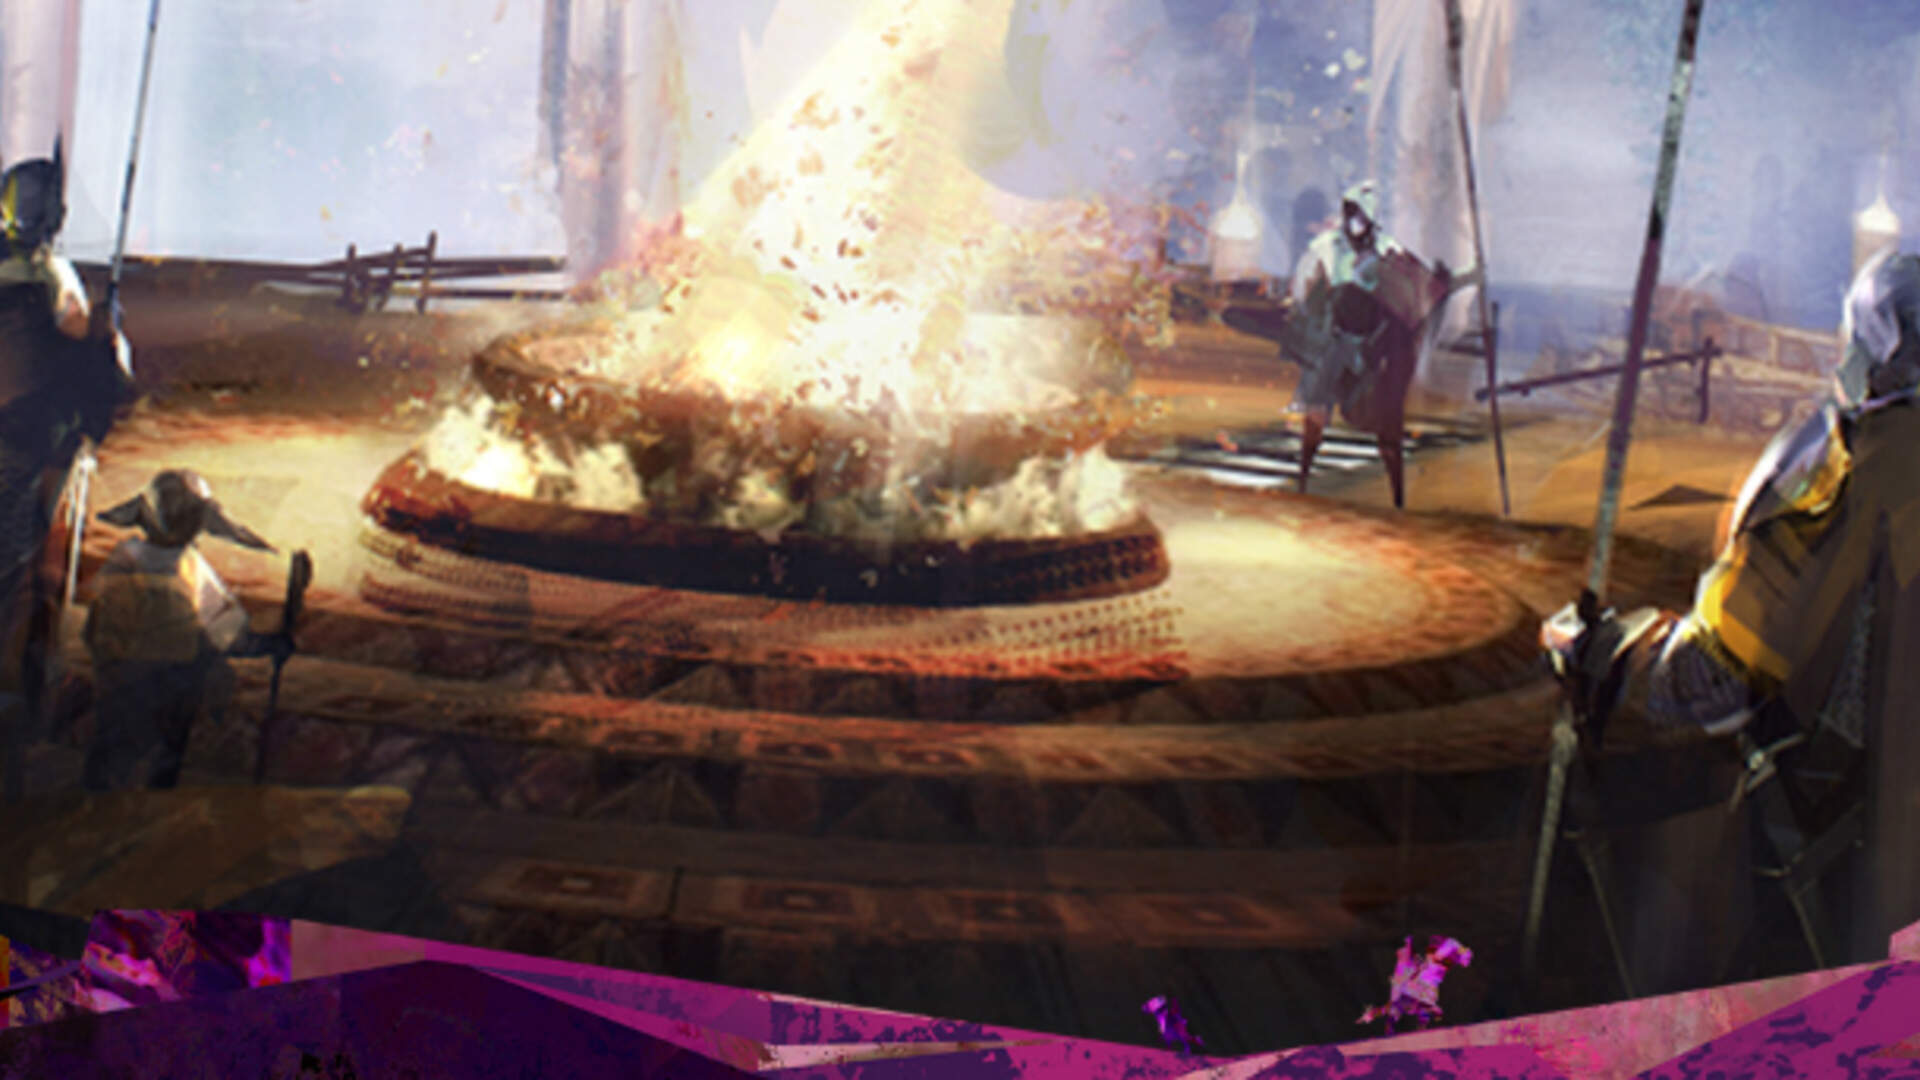 Guild Wars 2's Latest Episode Offers Players a City They Can Build and Evolve